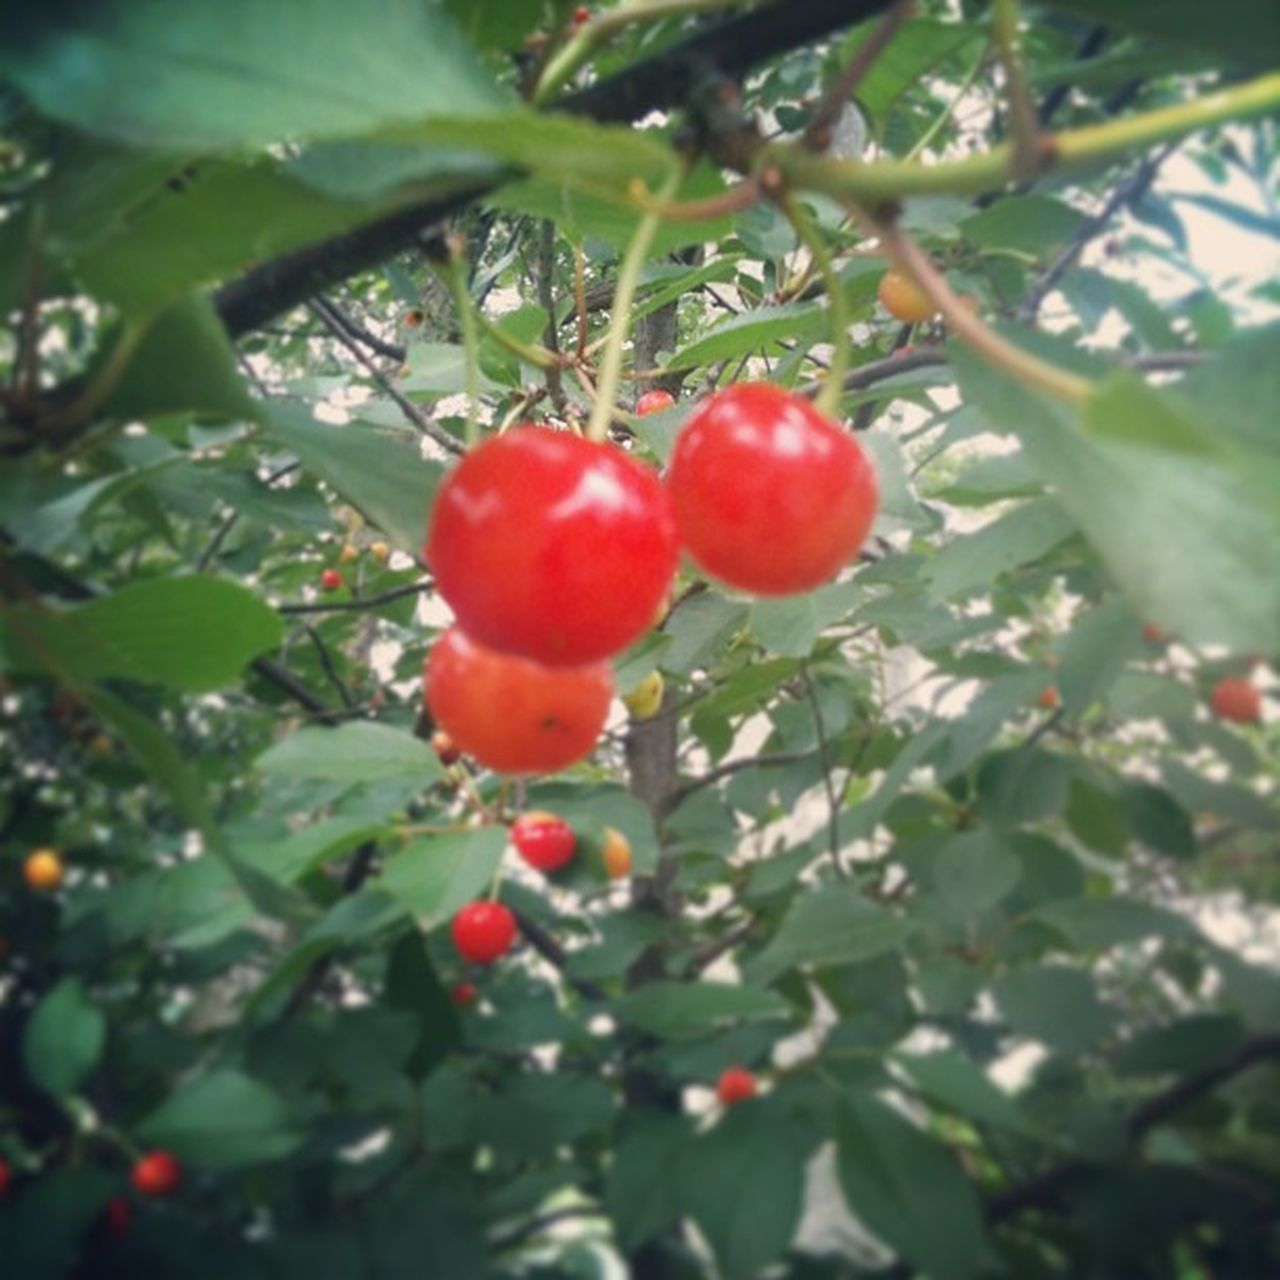 fruit, food and drink, growth, red, tree, food, growing, healthy eating, leaf, nature, ripe, freshness, day, outdoors, no people, green color, branch, beauty in nature, plant, agriculture, low angle view, close-up